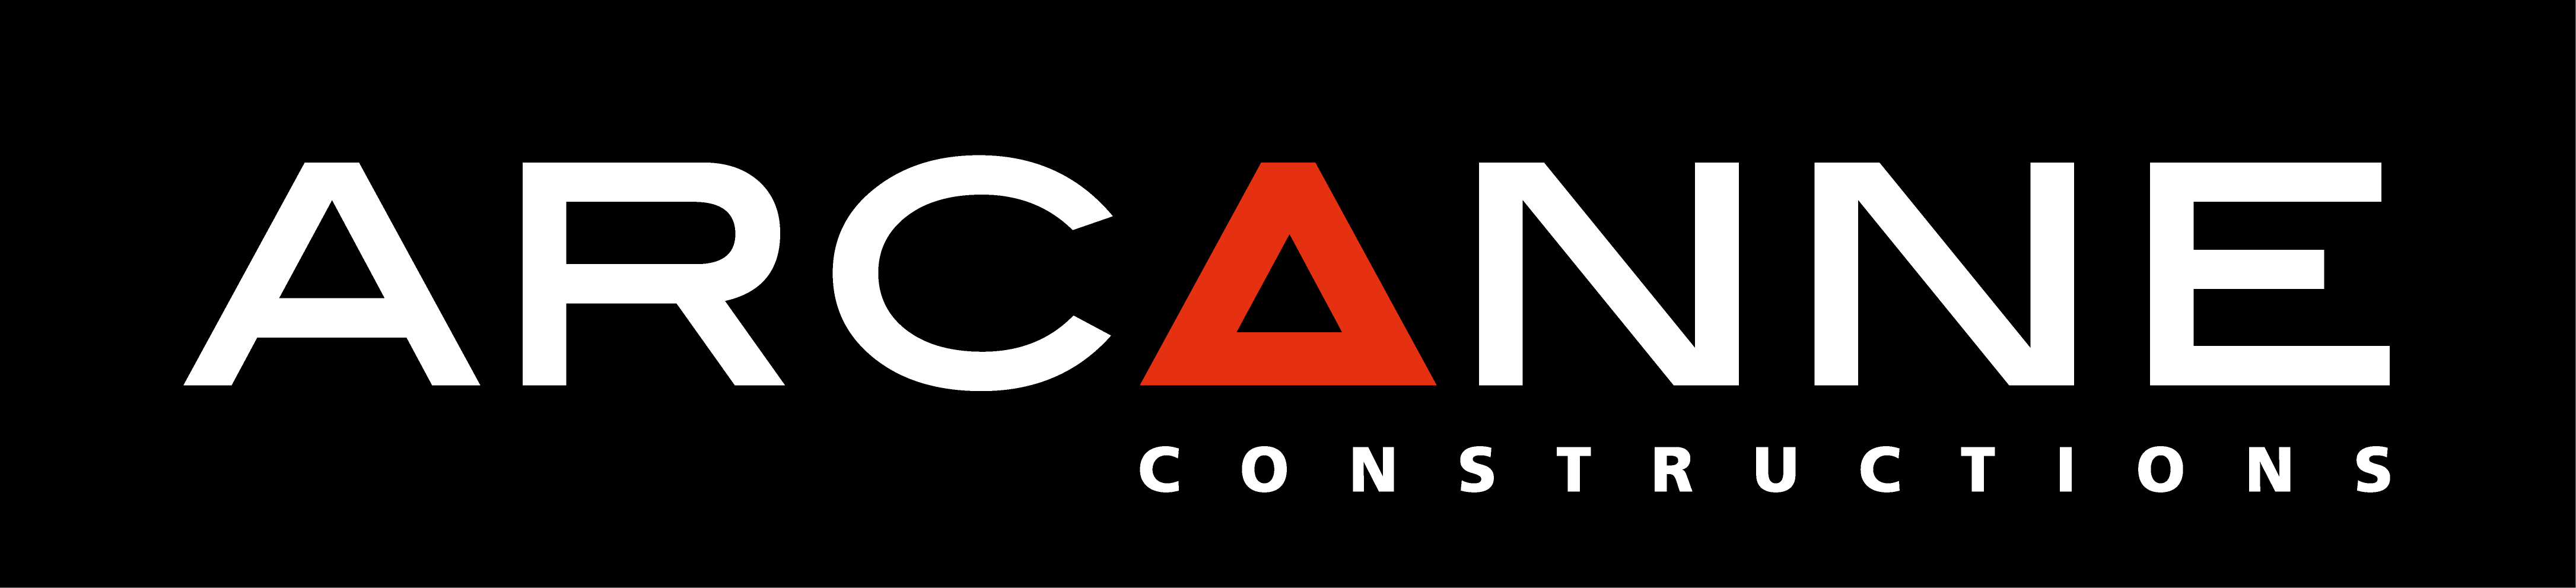 Logo Arcanne Constructions